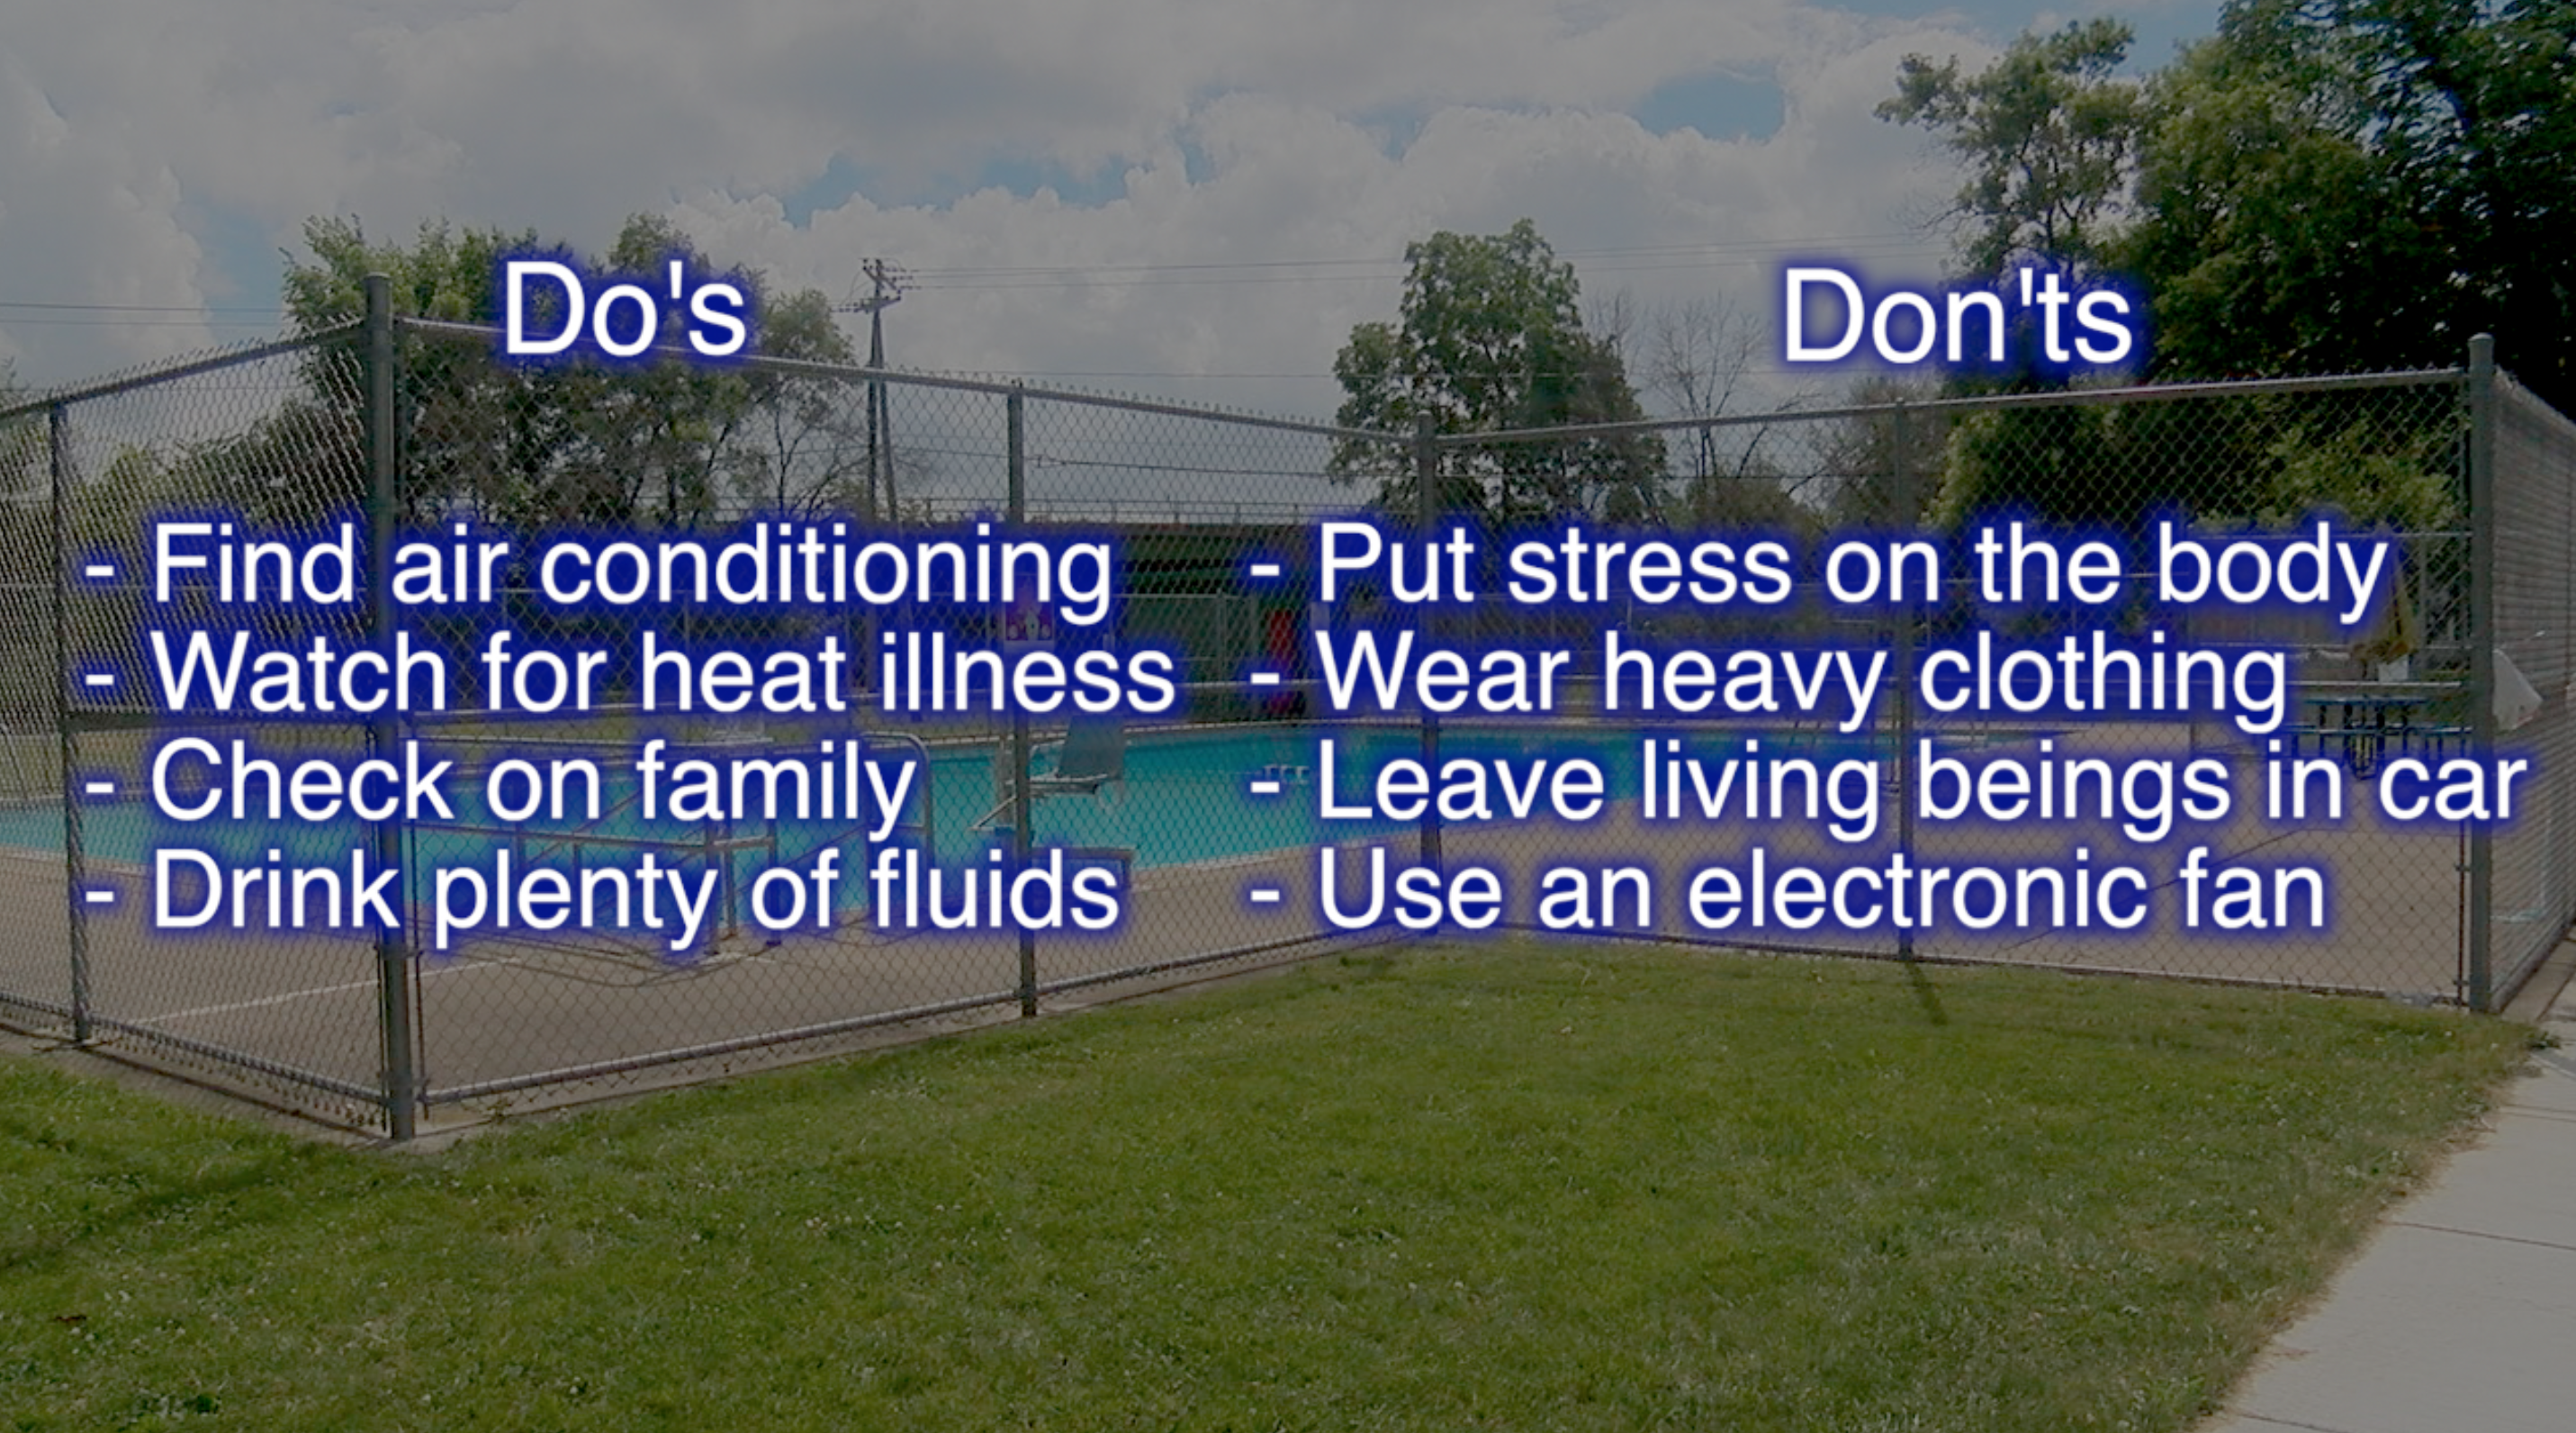 A Complete Guide To Handling The Heatwave Coming To Wny